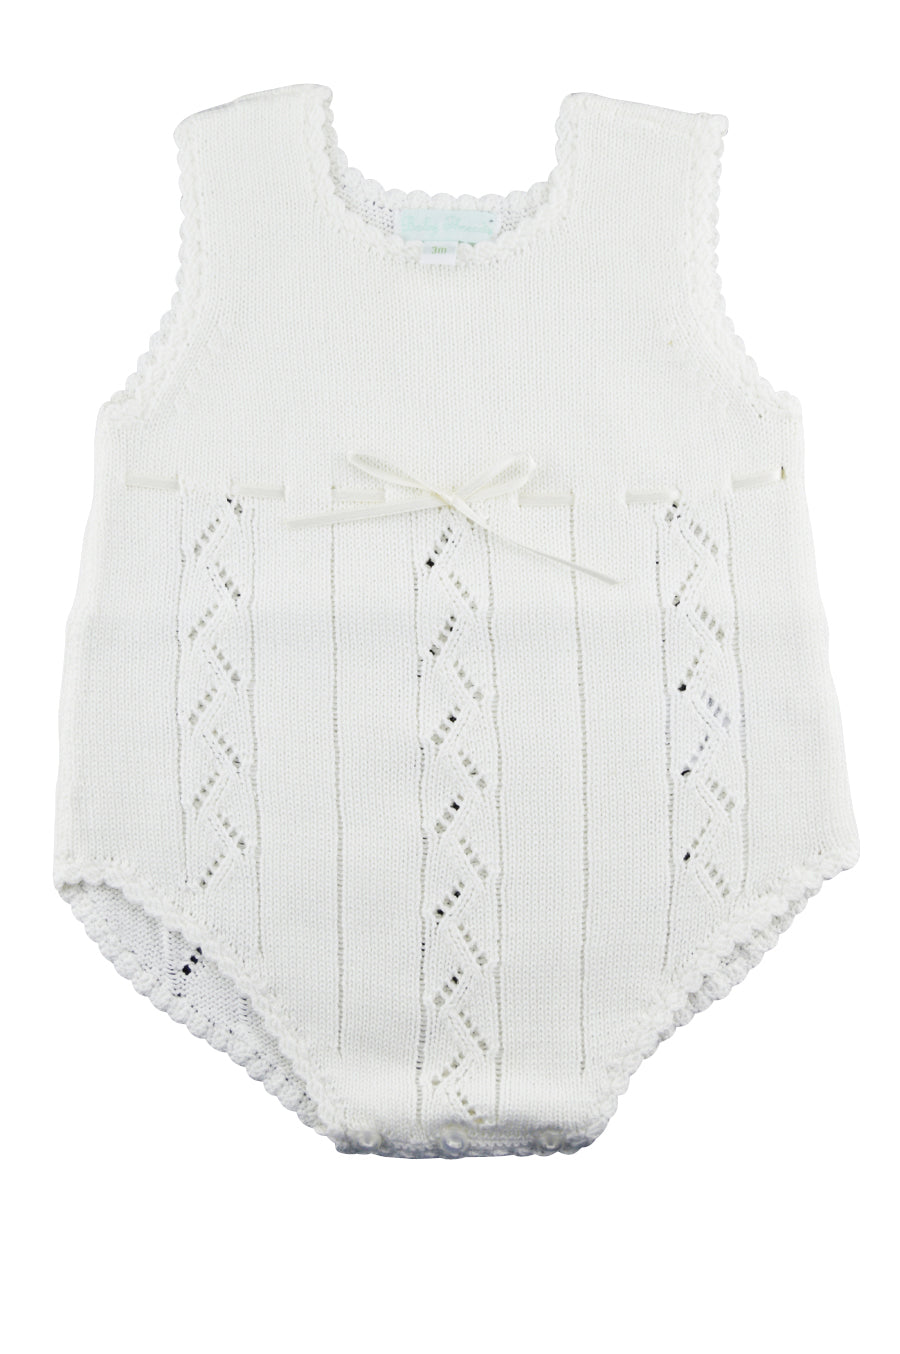 White Pima Cotton Knitted Baby Romper